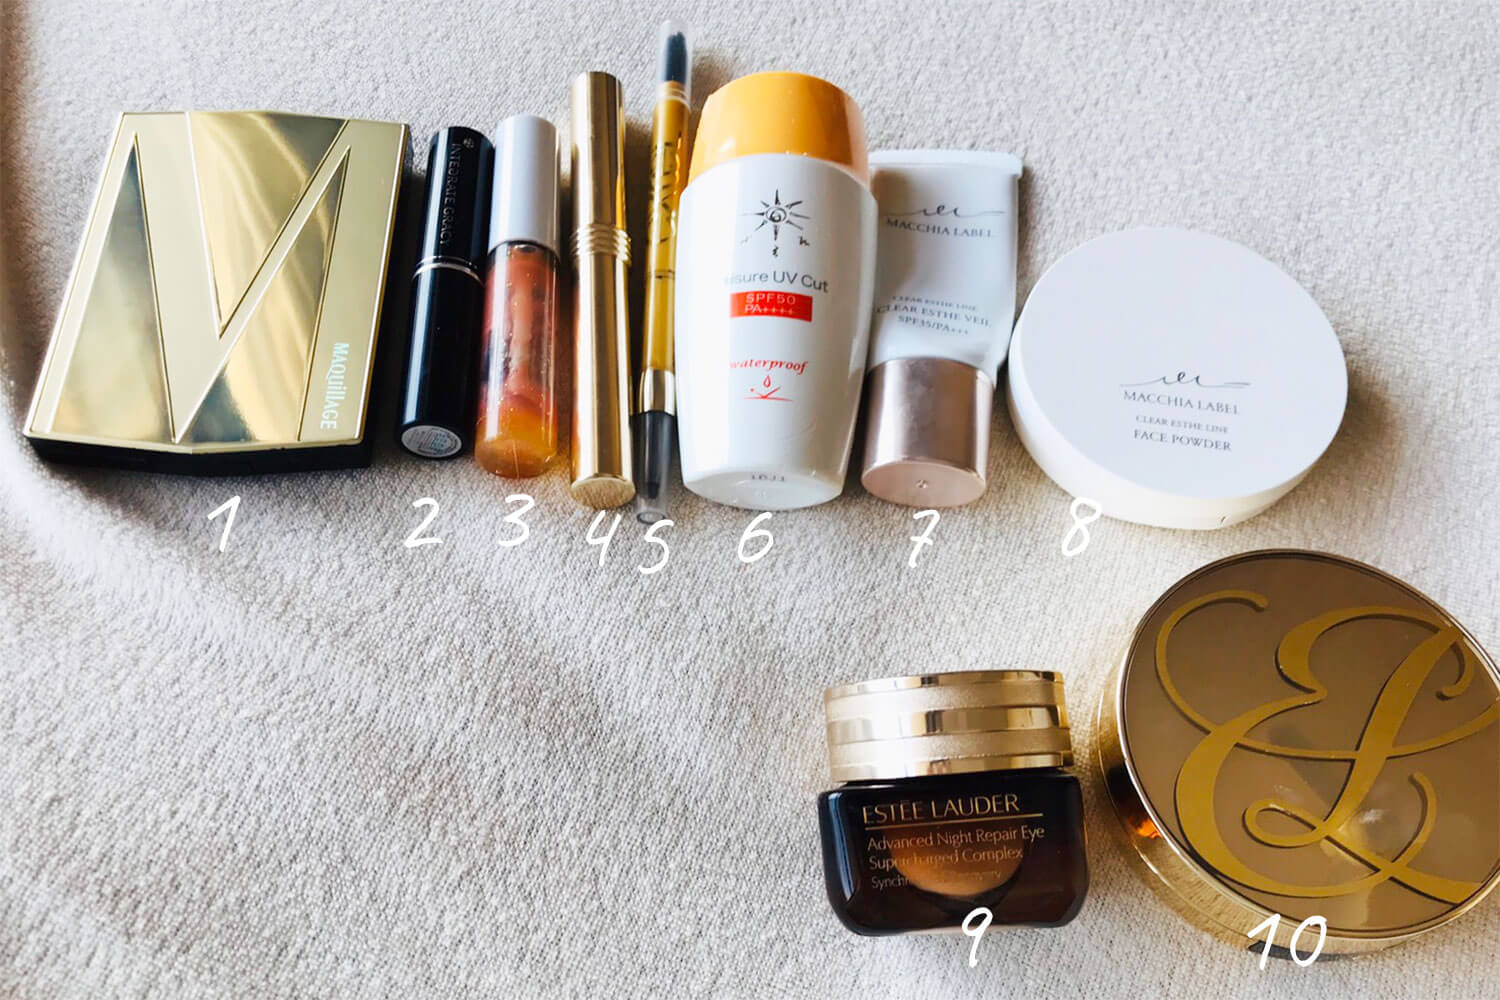 Beauty and makeup products in Japan